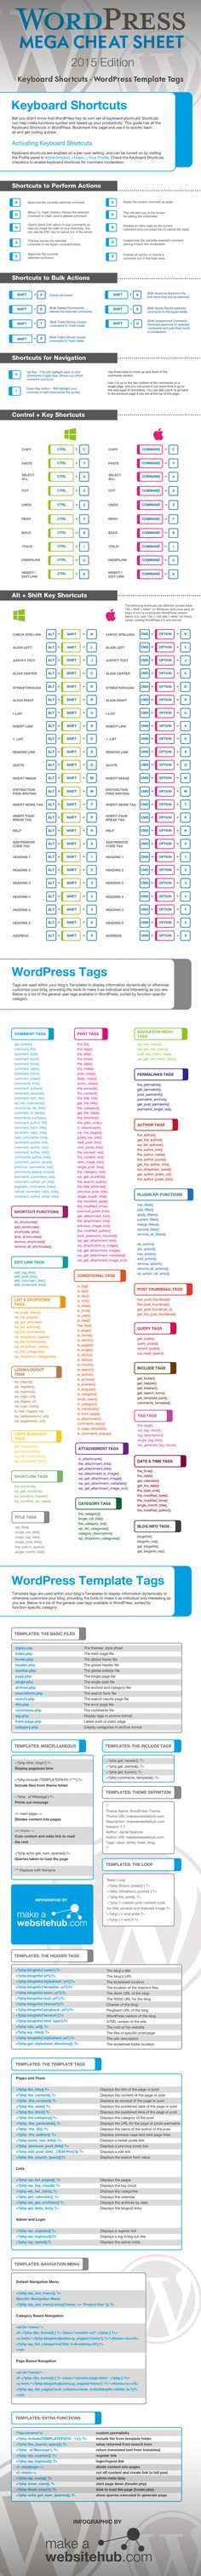 Wordpress Cheat sheet 2015 edition                                                                                                                                                                                 More